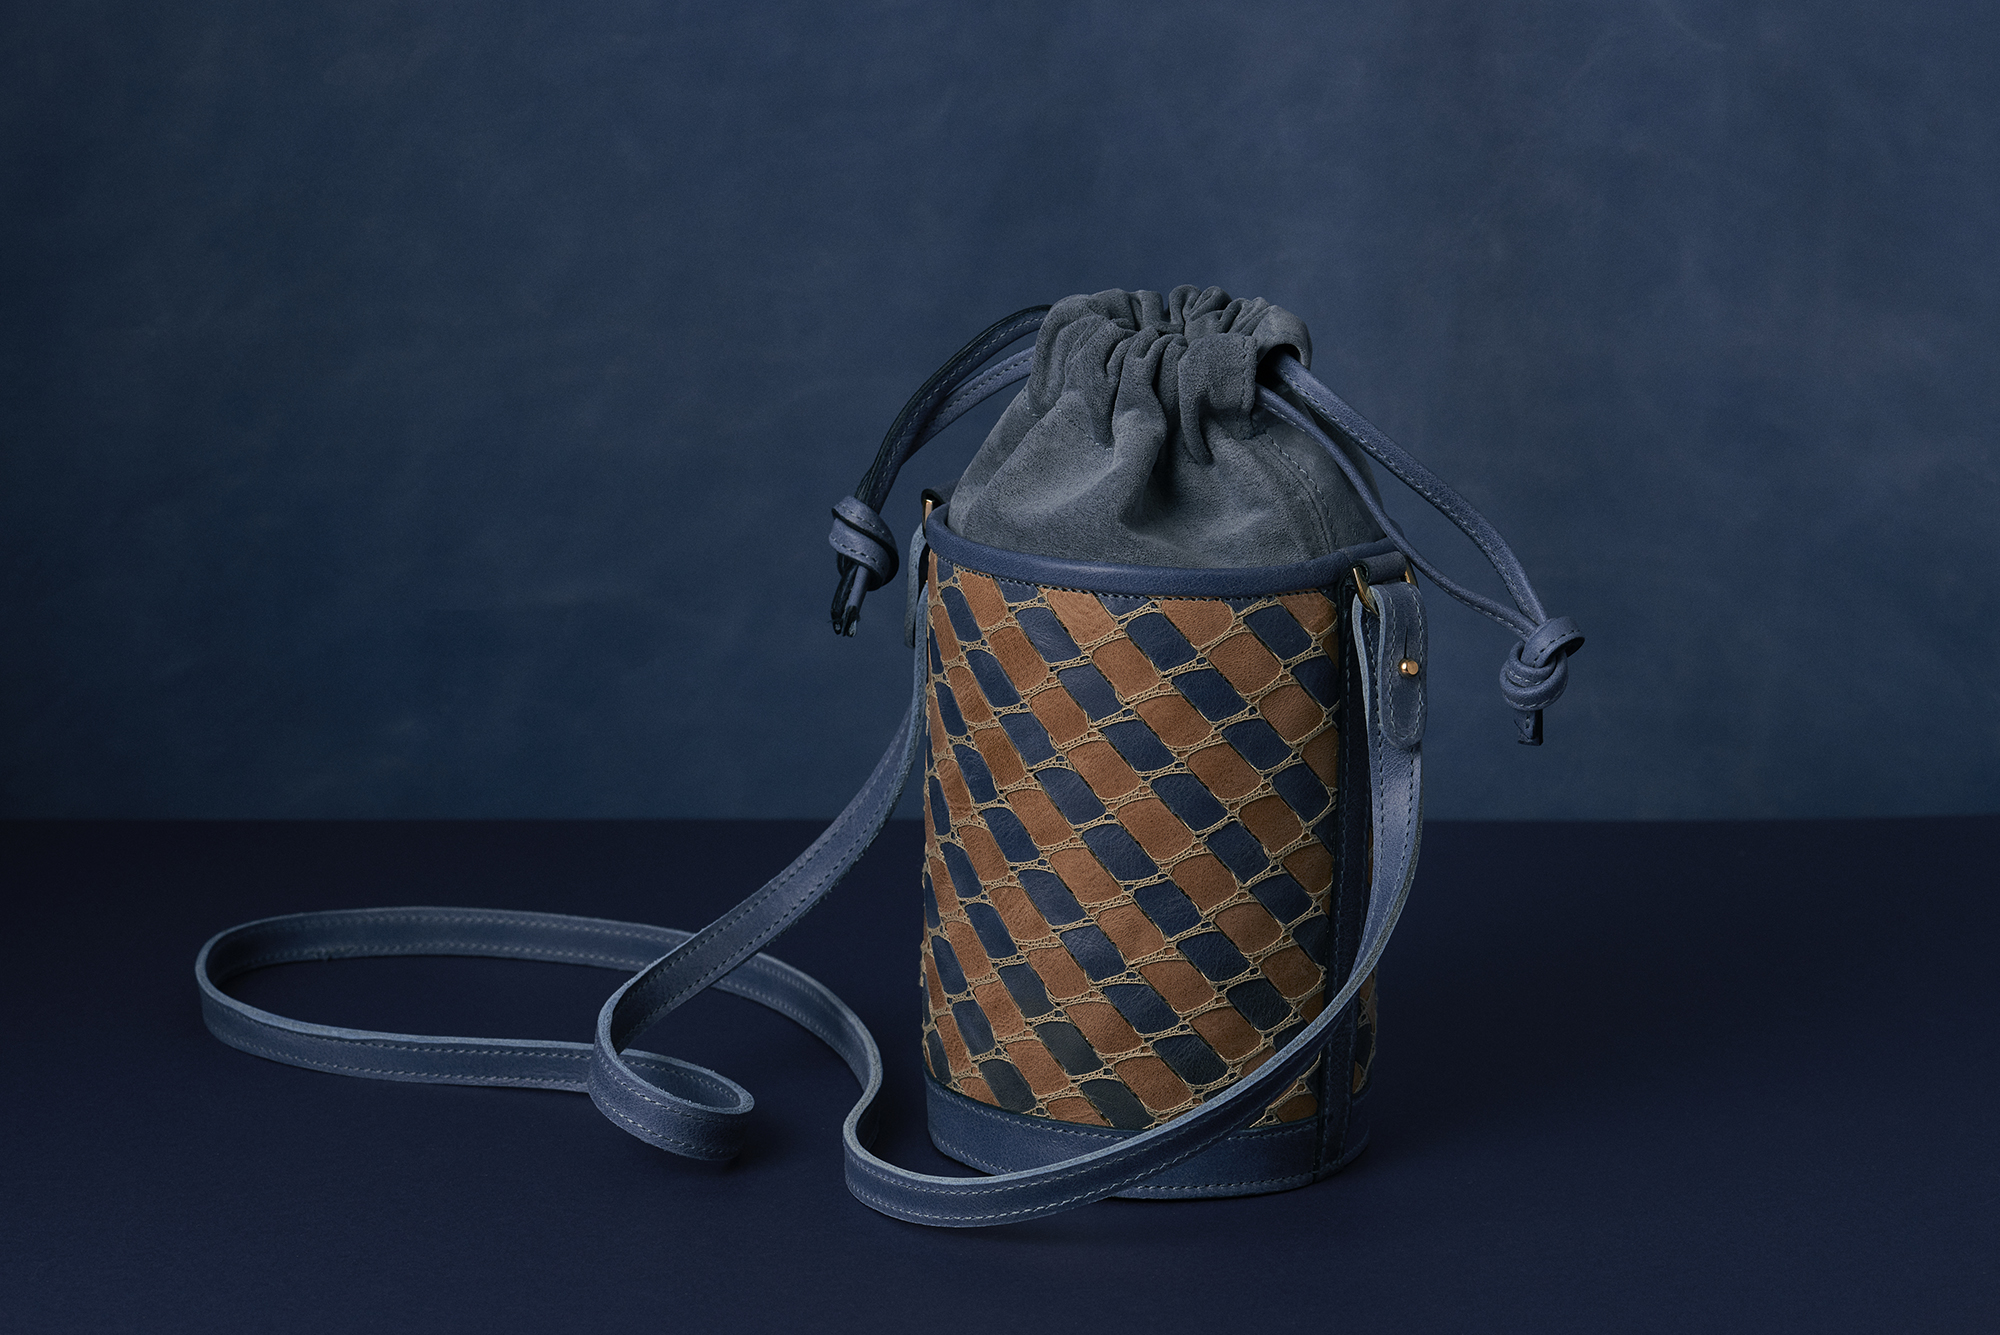 The Barrel Bag in Cobalto Blue and Tortora Taupe